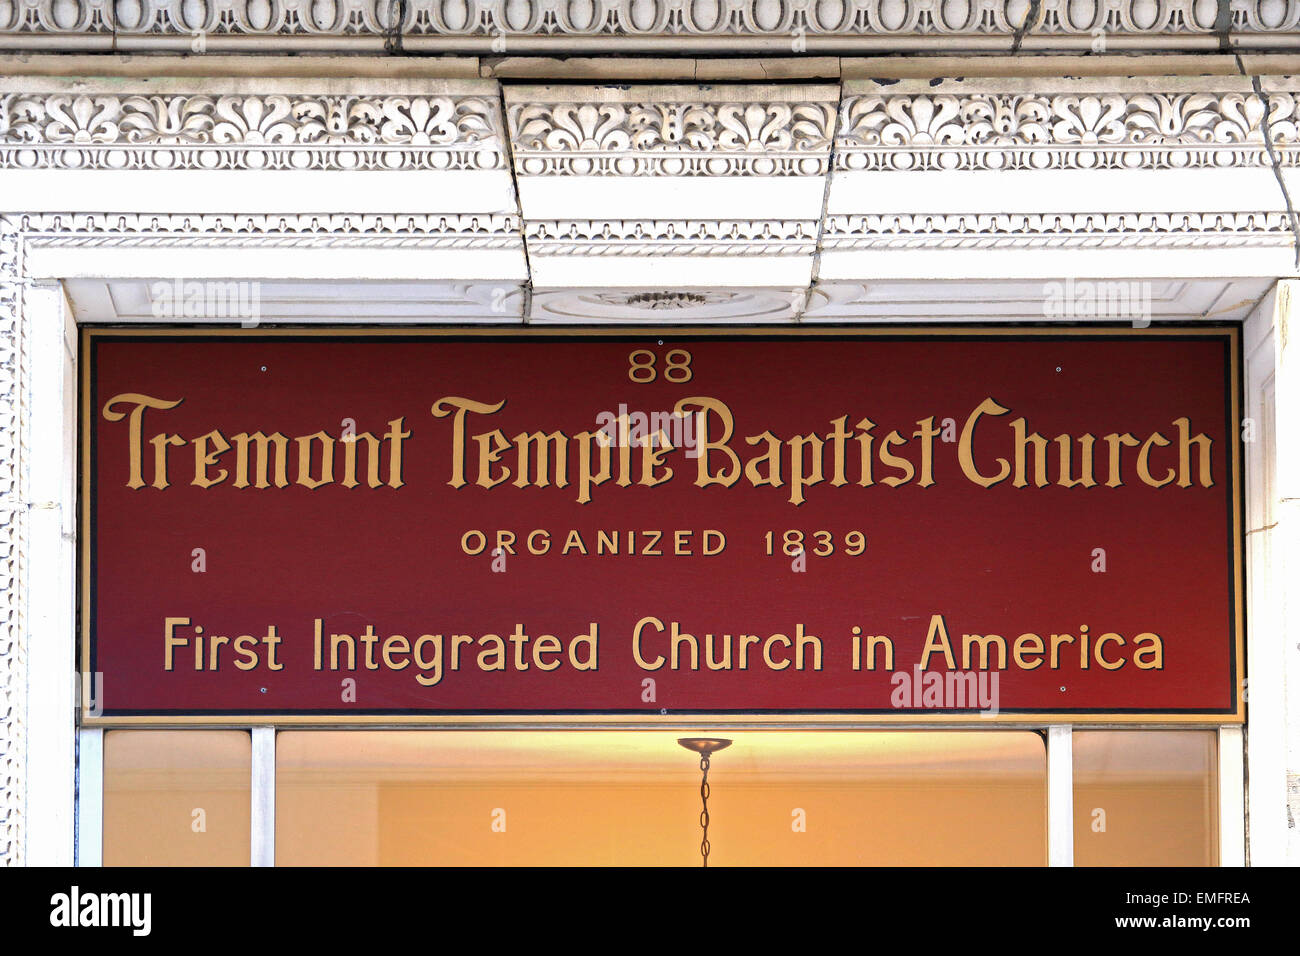 Massachusetts Boston Tremont Temple Baptist Church. Imagen De Stock